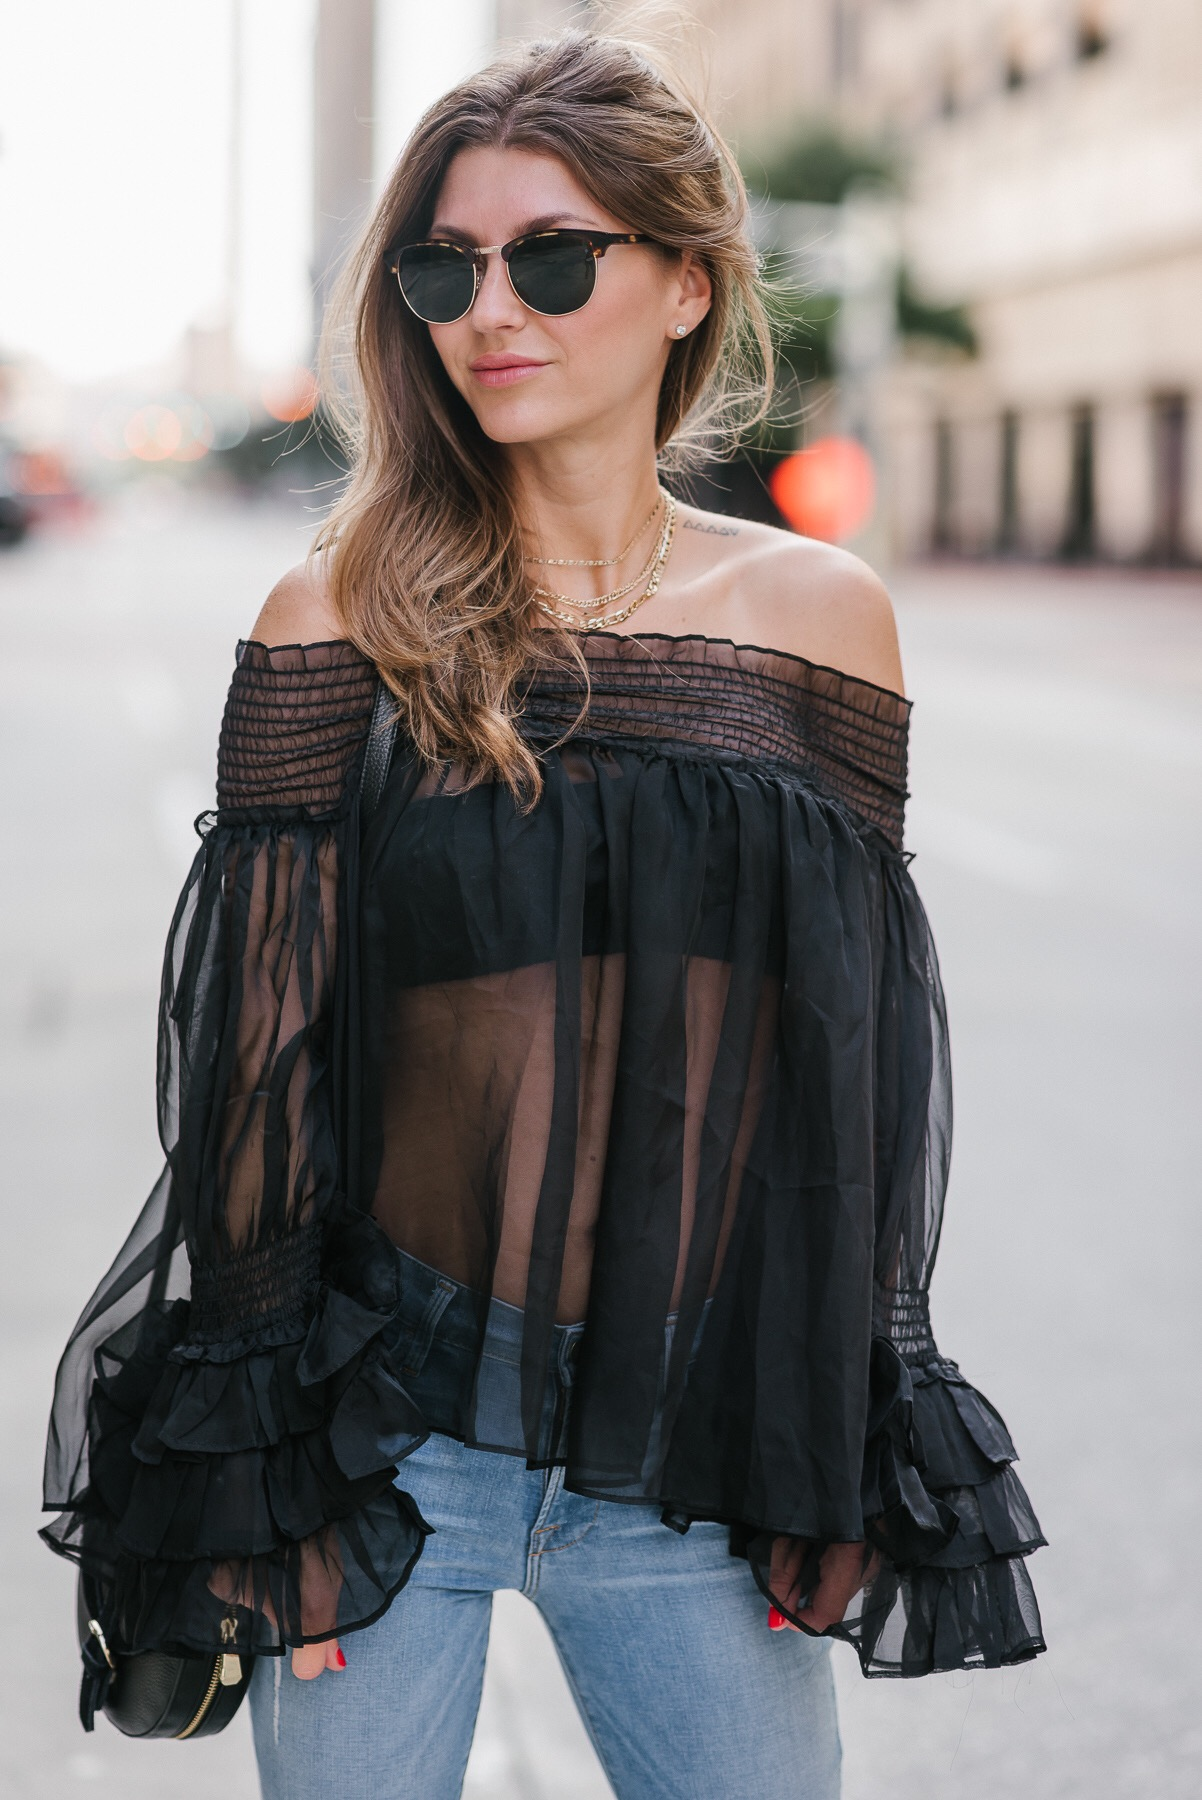 AshLee Frazier wearing sheer top from Topshop